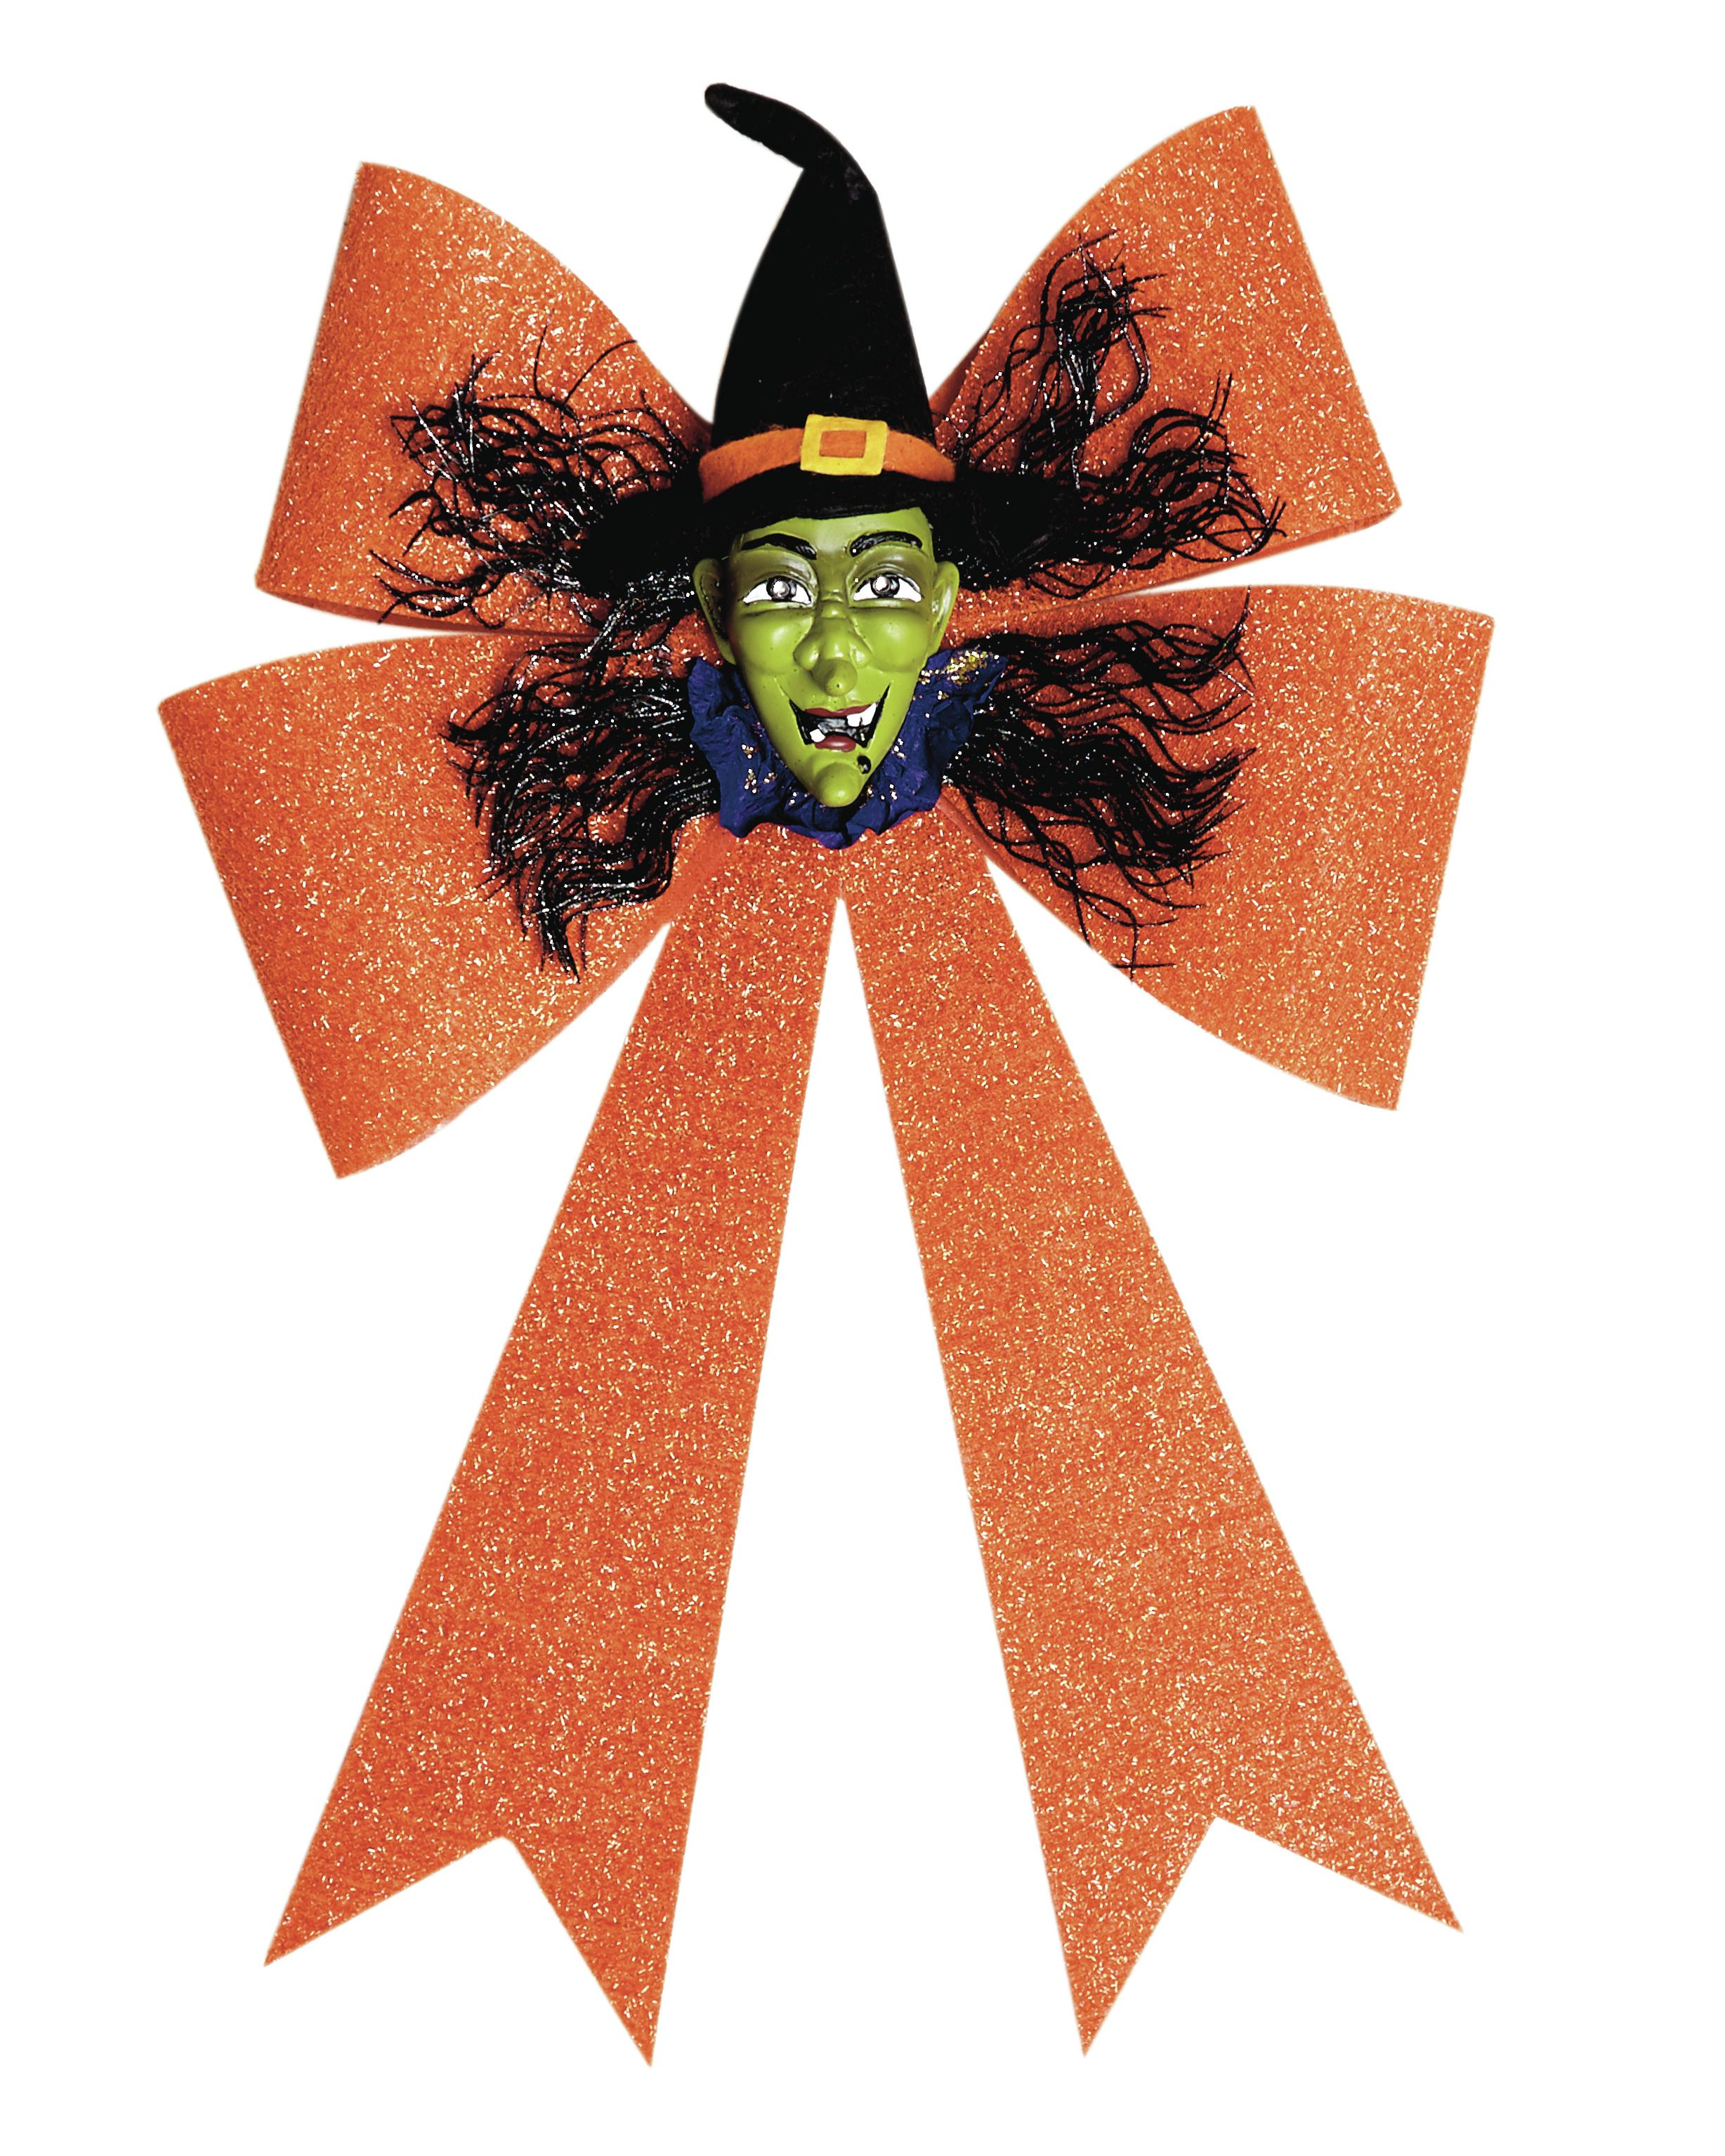 Get your guests' hearts pounding with this spine-tingling Halloween wreath. It features a distressed, shabby face that's carefully lit with a flickering light, giving it a supernatural quality. A sparkly felt bow adds colour and texture to your walls and door. Only €15 at Dunnes Stores.